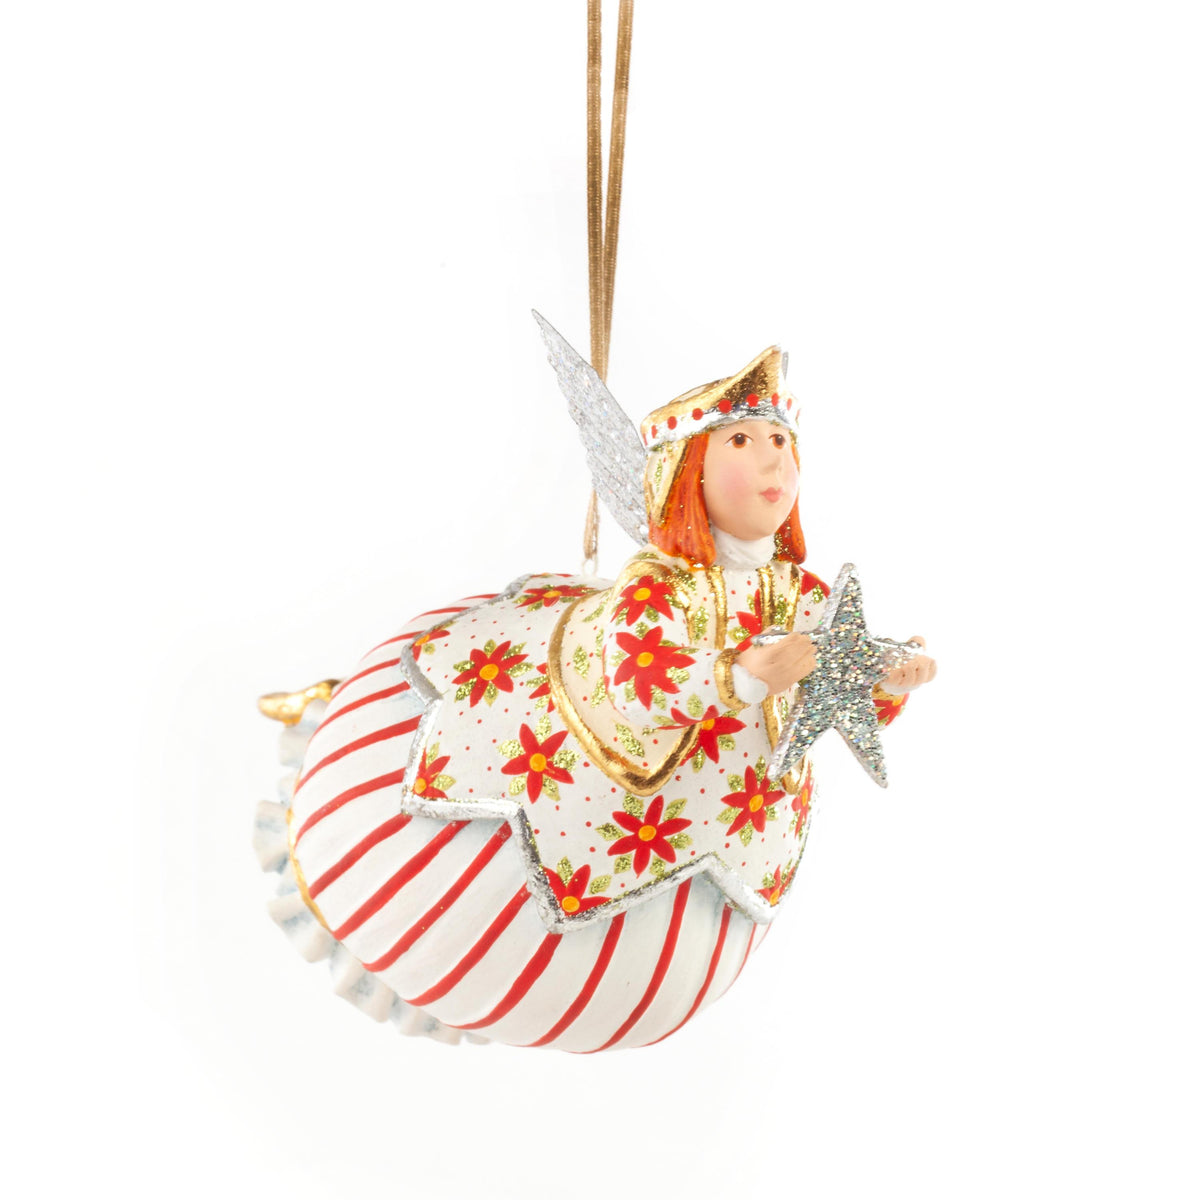 Celestial Paradise Angel Ornament - My Christmas